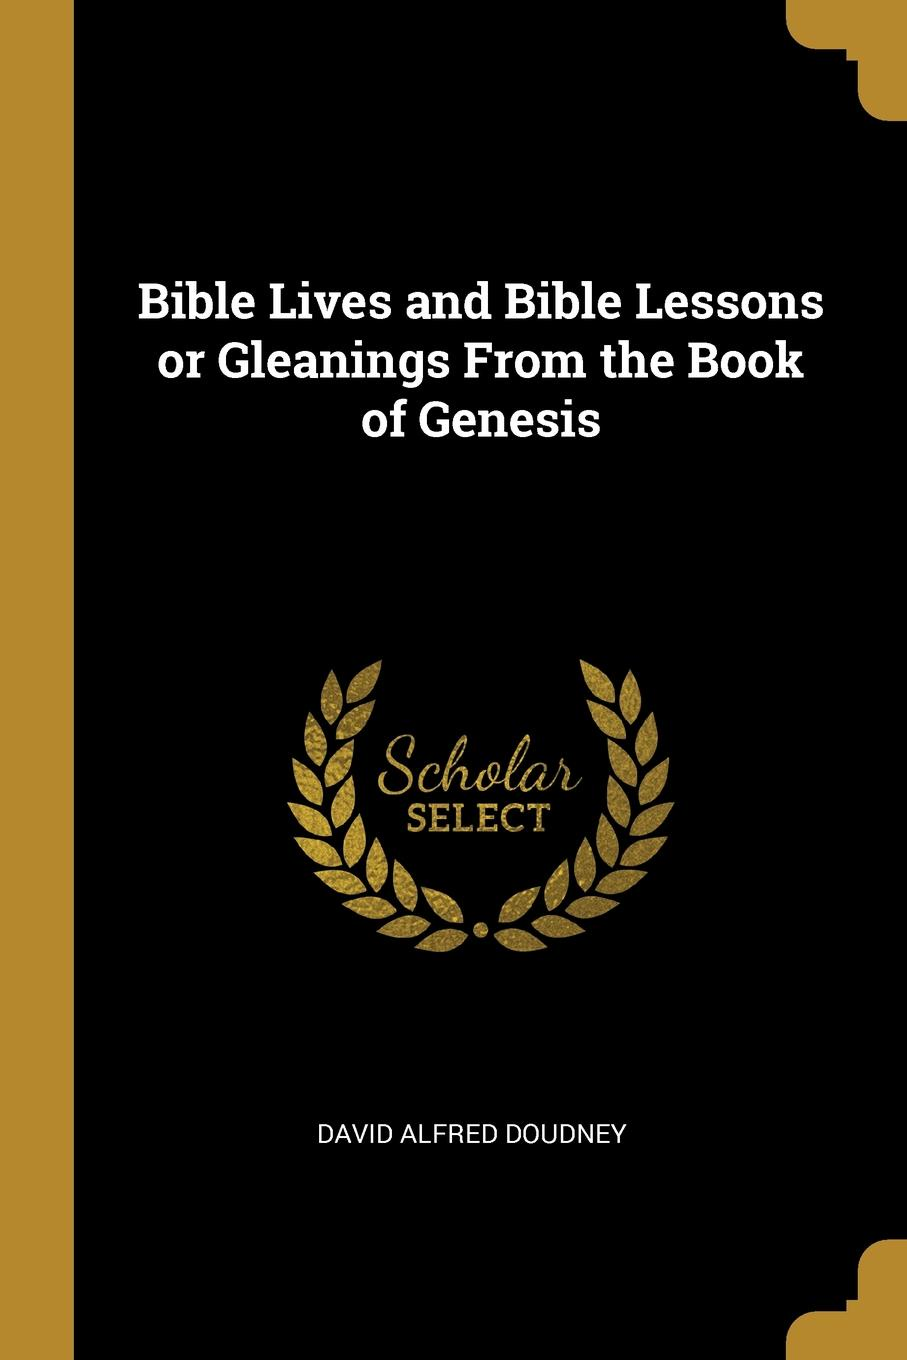 Bible Lives and Bible Lessons or Gleanings From the Book of Genesis